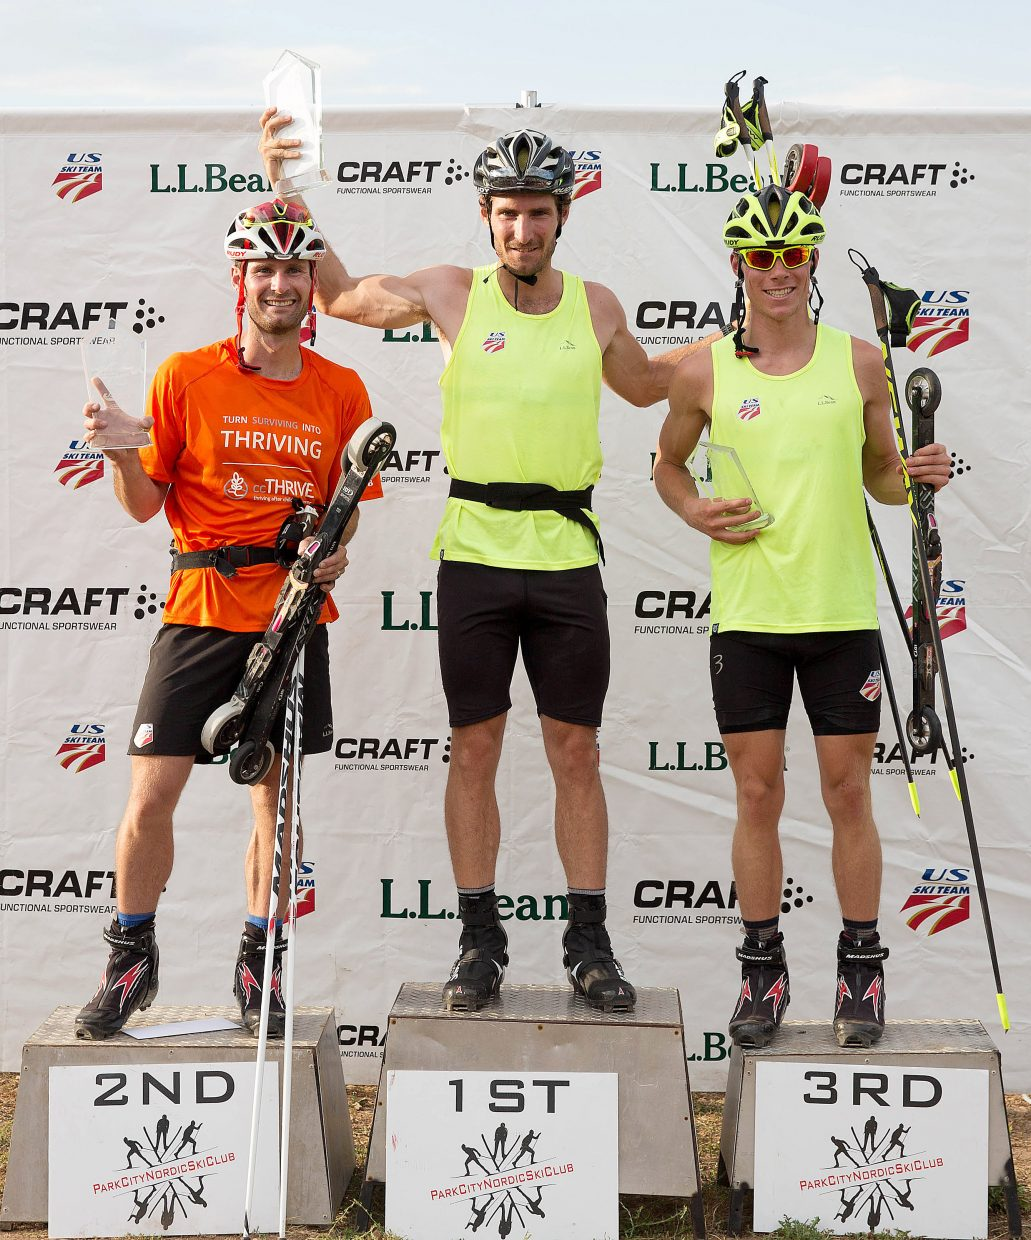 Taylor Fletcher won his first U.S. Nordic Combined national championship on Saturday. Bryan Fletcher was second and Ben Berend, earning his first nationals podium, was third.